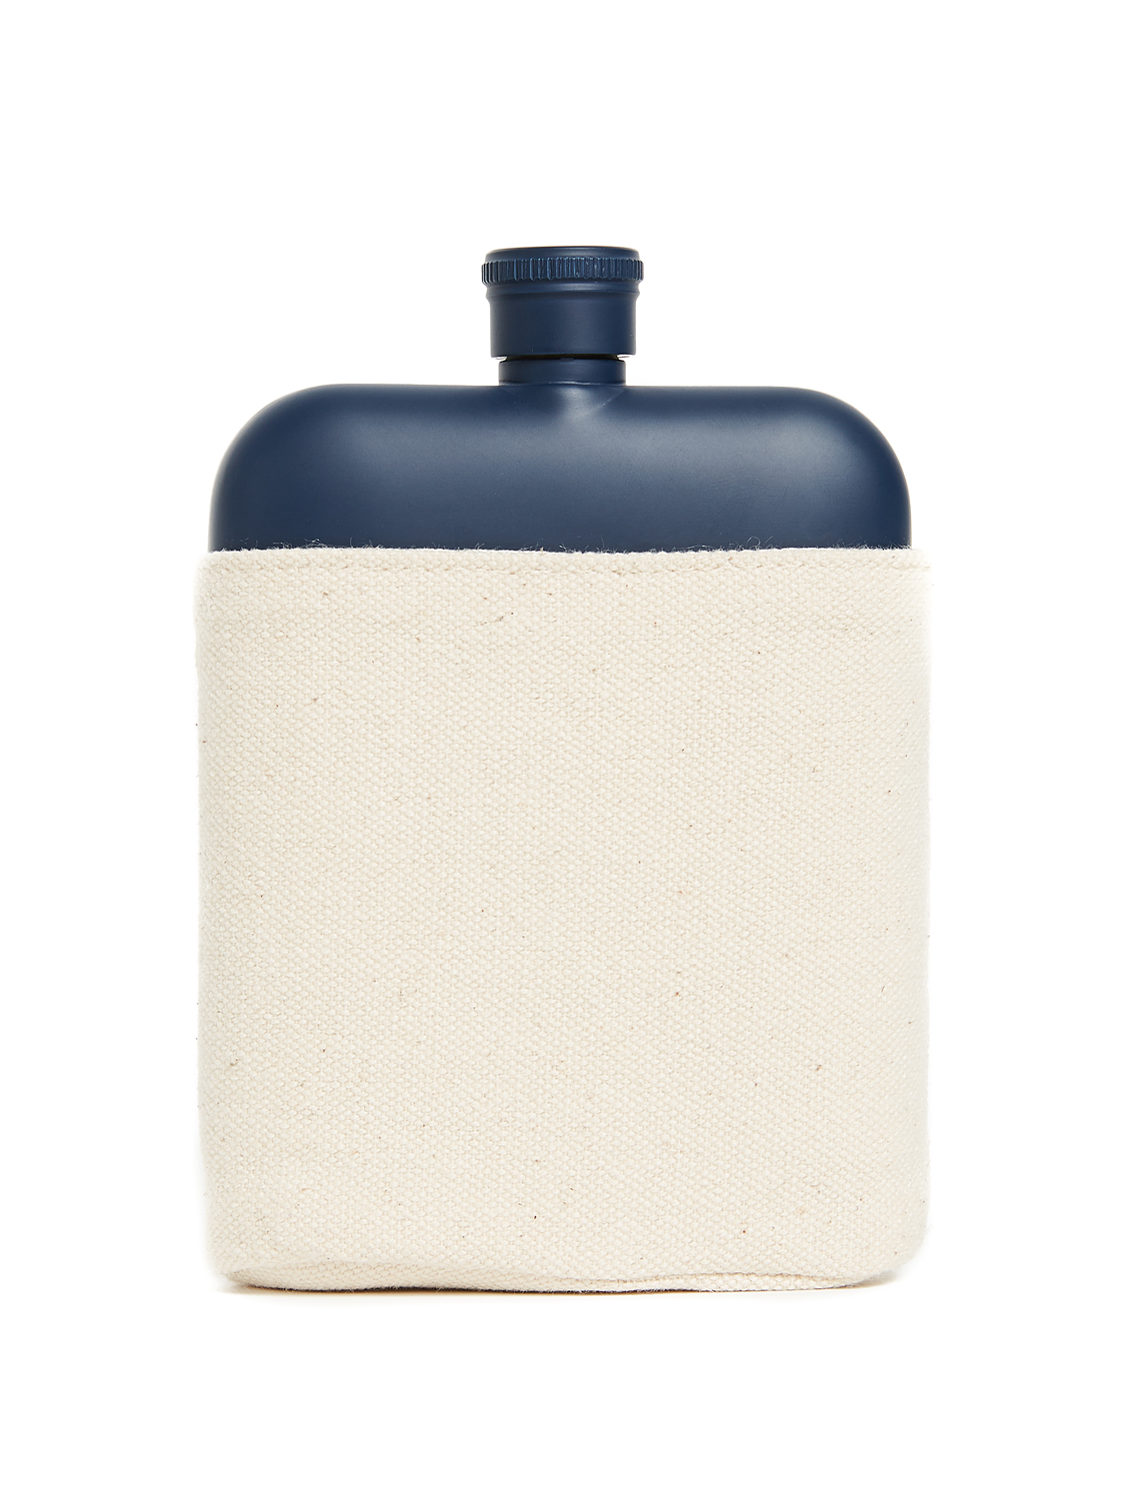 Izola stainless steel flask—Gifts under $50